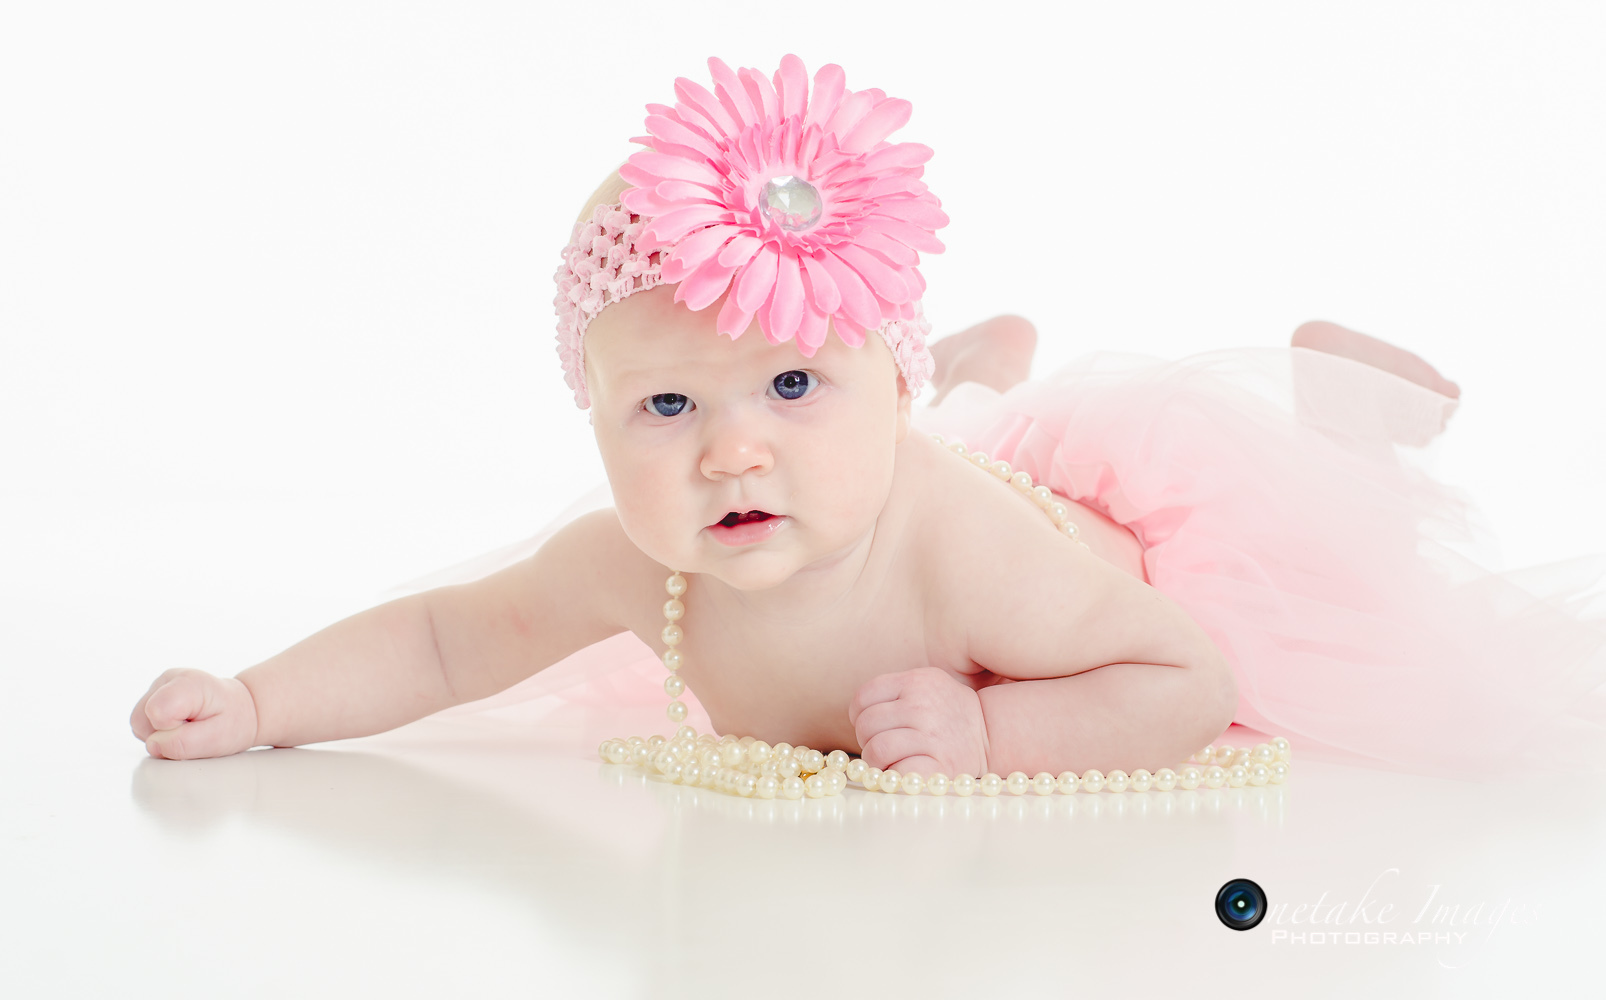 Baby Meadow - Children Photography-4